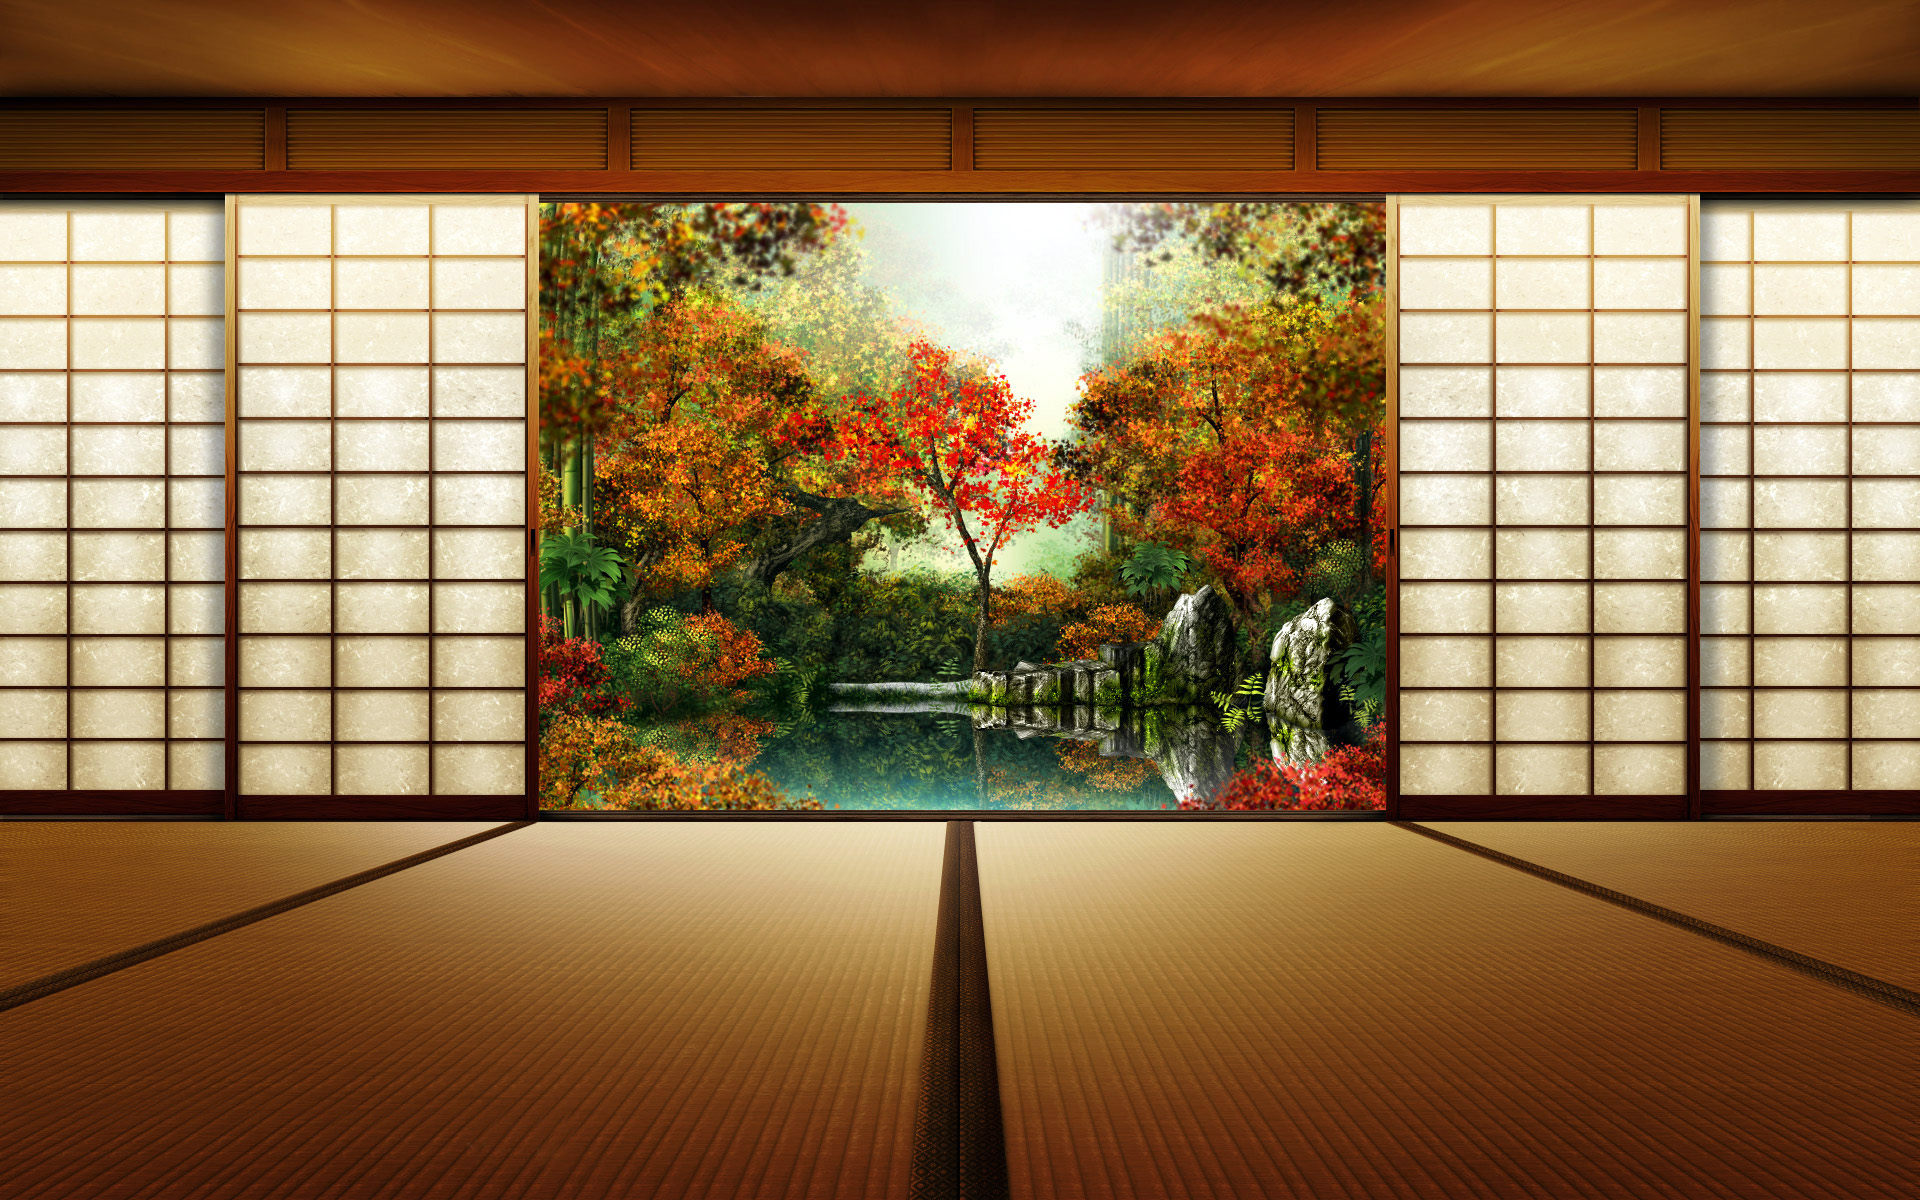 1080p hd japan wallpapers for free download the for Room design hd image